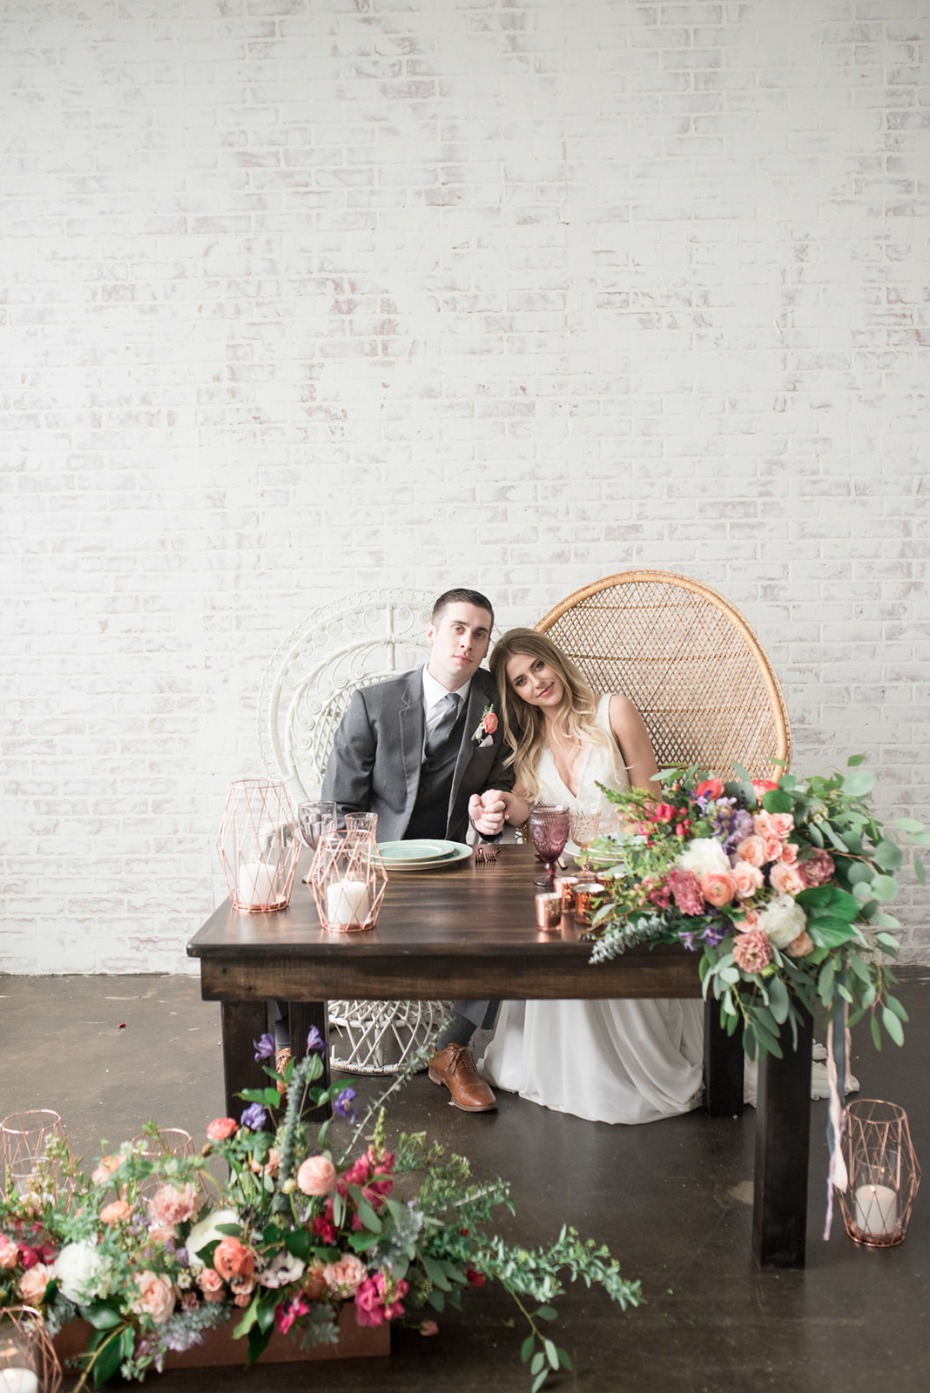 Bohemian sweetheart table with peacock chairs